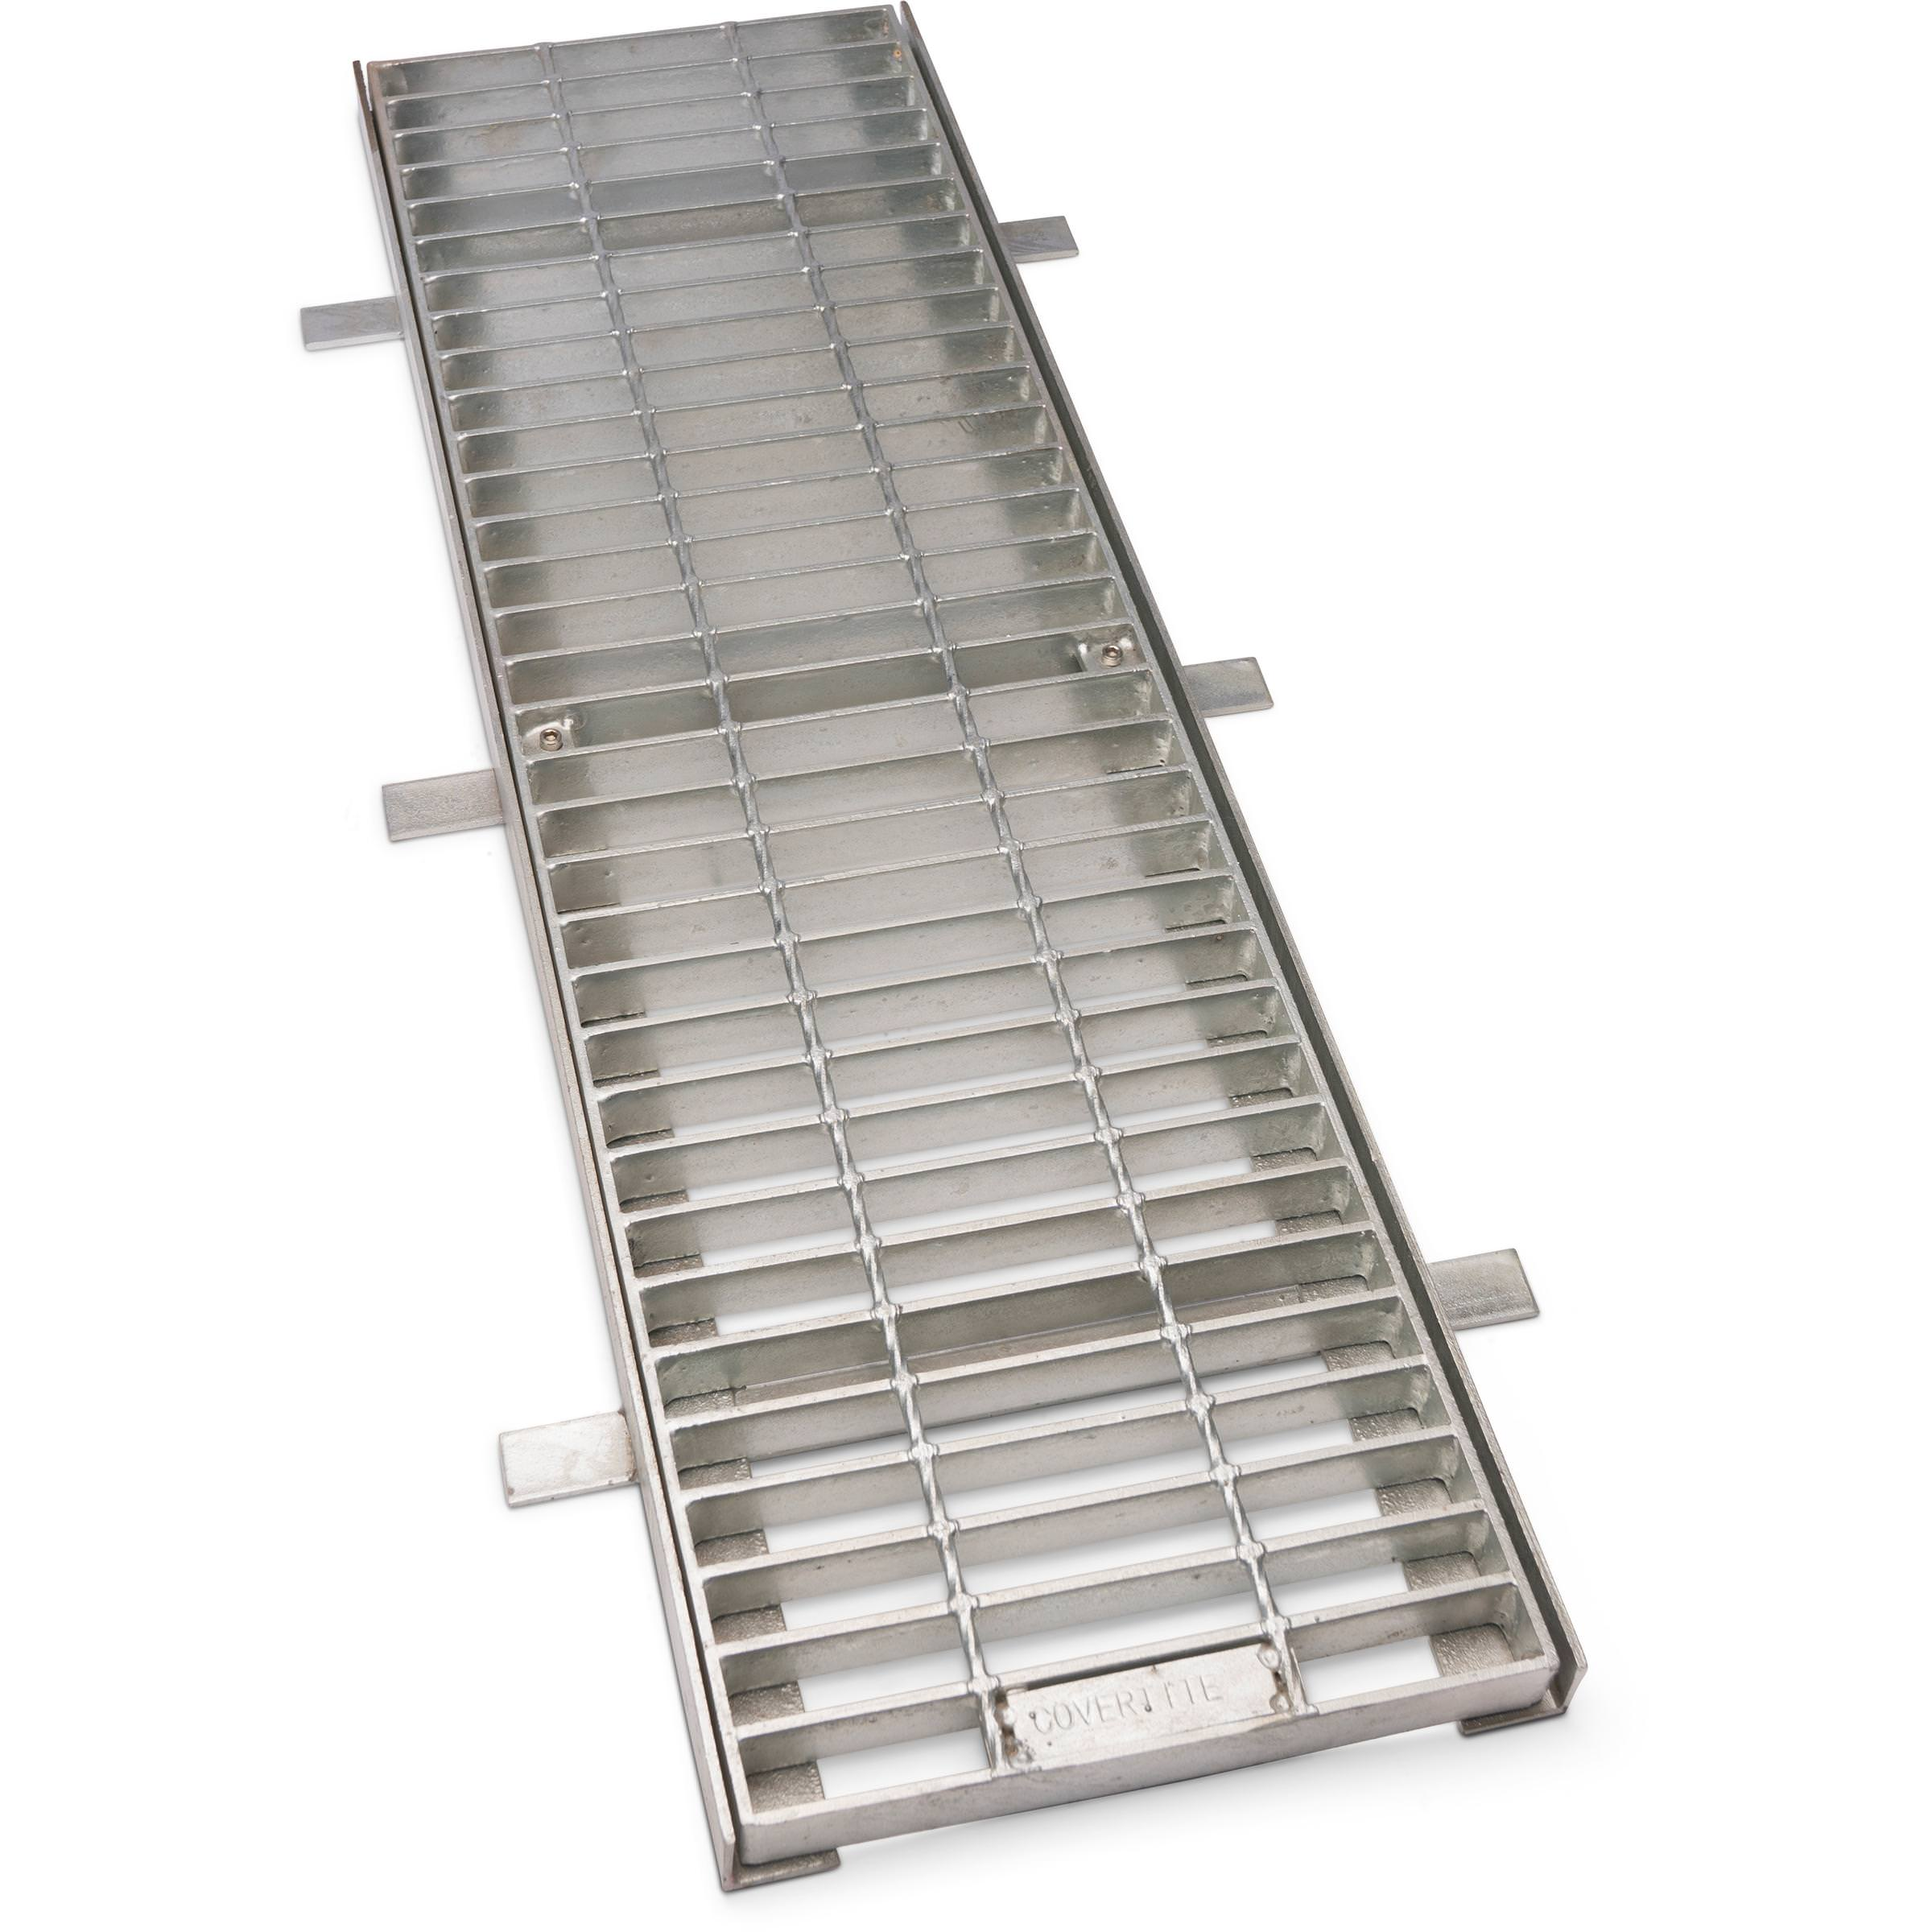 Galvanised Mild Steel Trench Grate